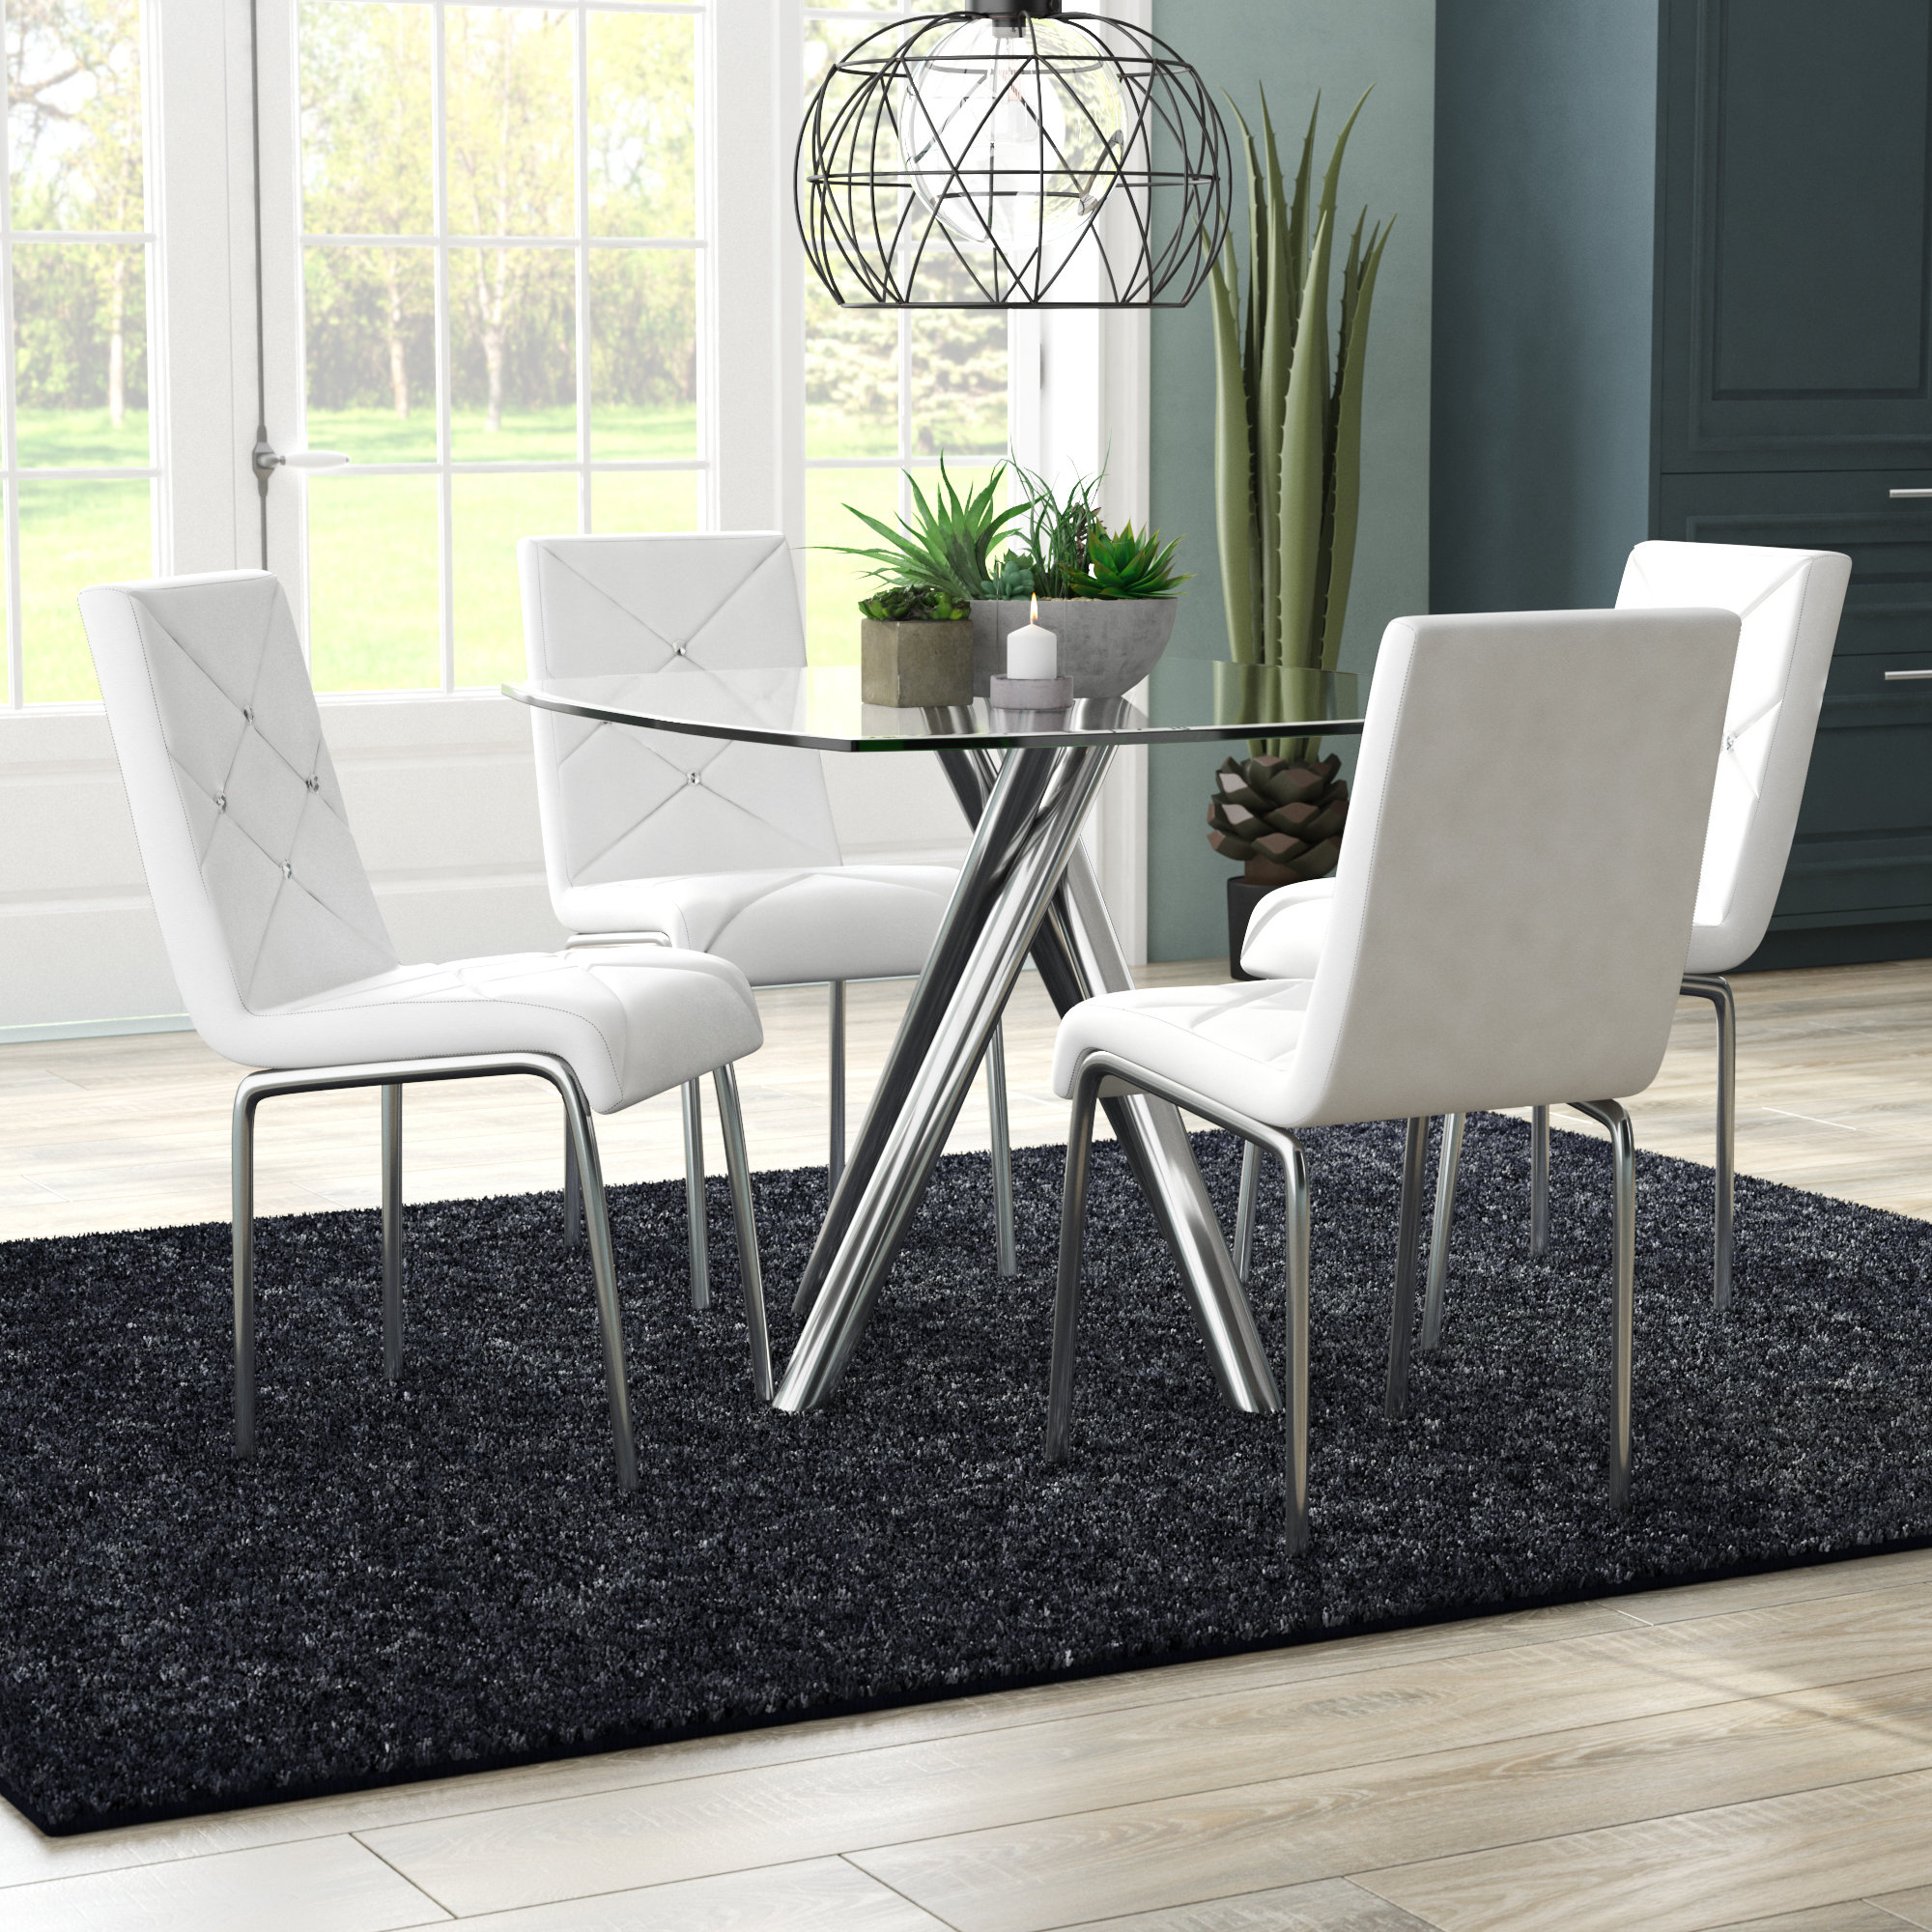 Bax 5 Piece Dining Set Intended For Best And Newest Linette 5 Piece Dining Table Sets (View 5 of 20)